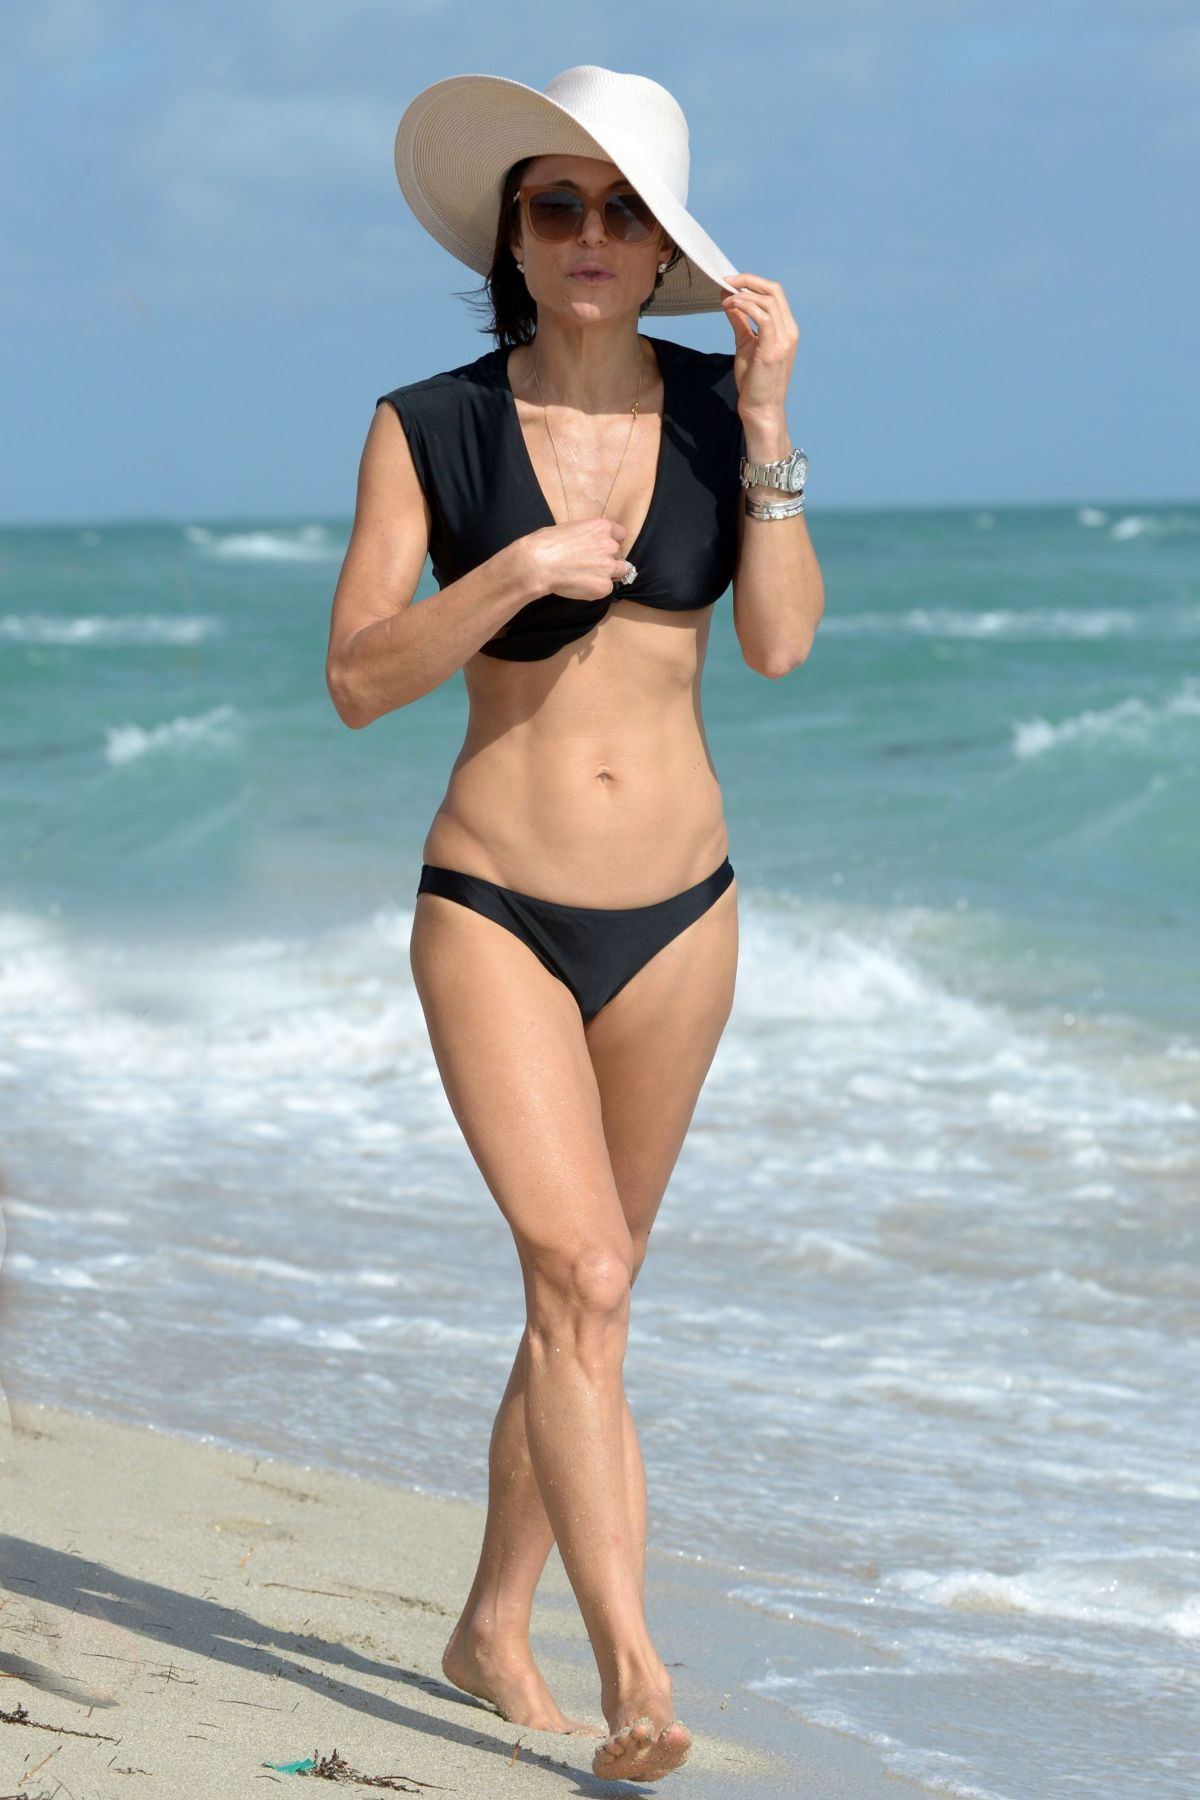 BETHENNY FRANKEL in Bikini on the Beach in Miami 12/05/2016   bethenny-frankel-in-bikini-on-the-beach-in-miami-12-05-2016_29